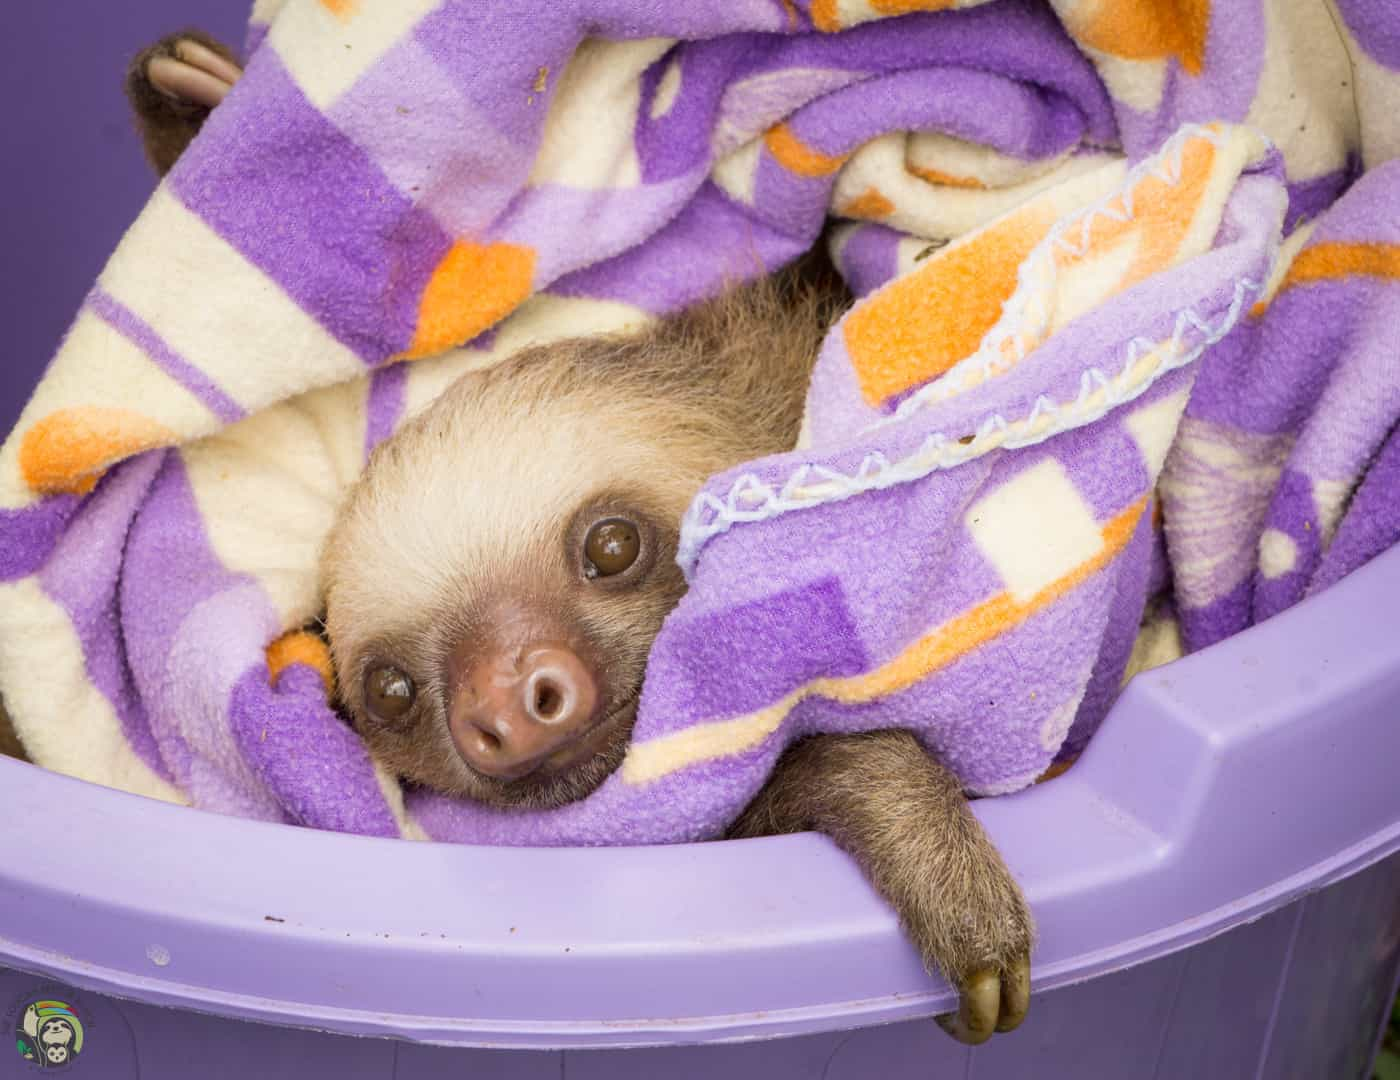 A sloth at The Toucan Ranch in Costa Rica.